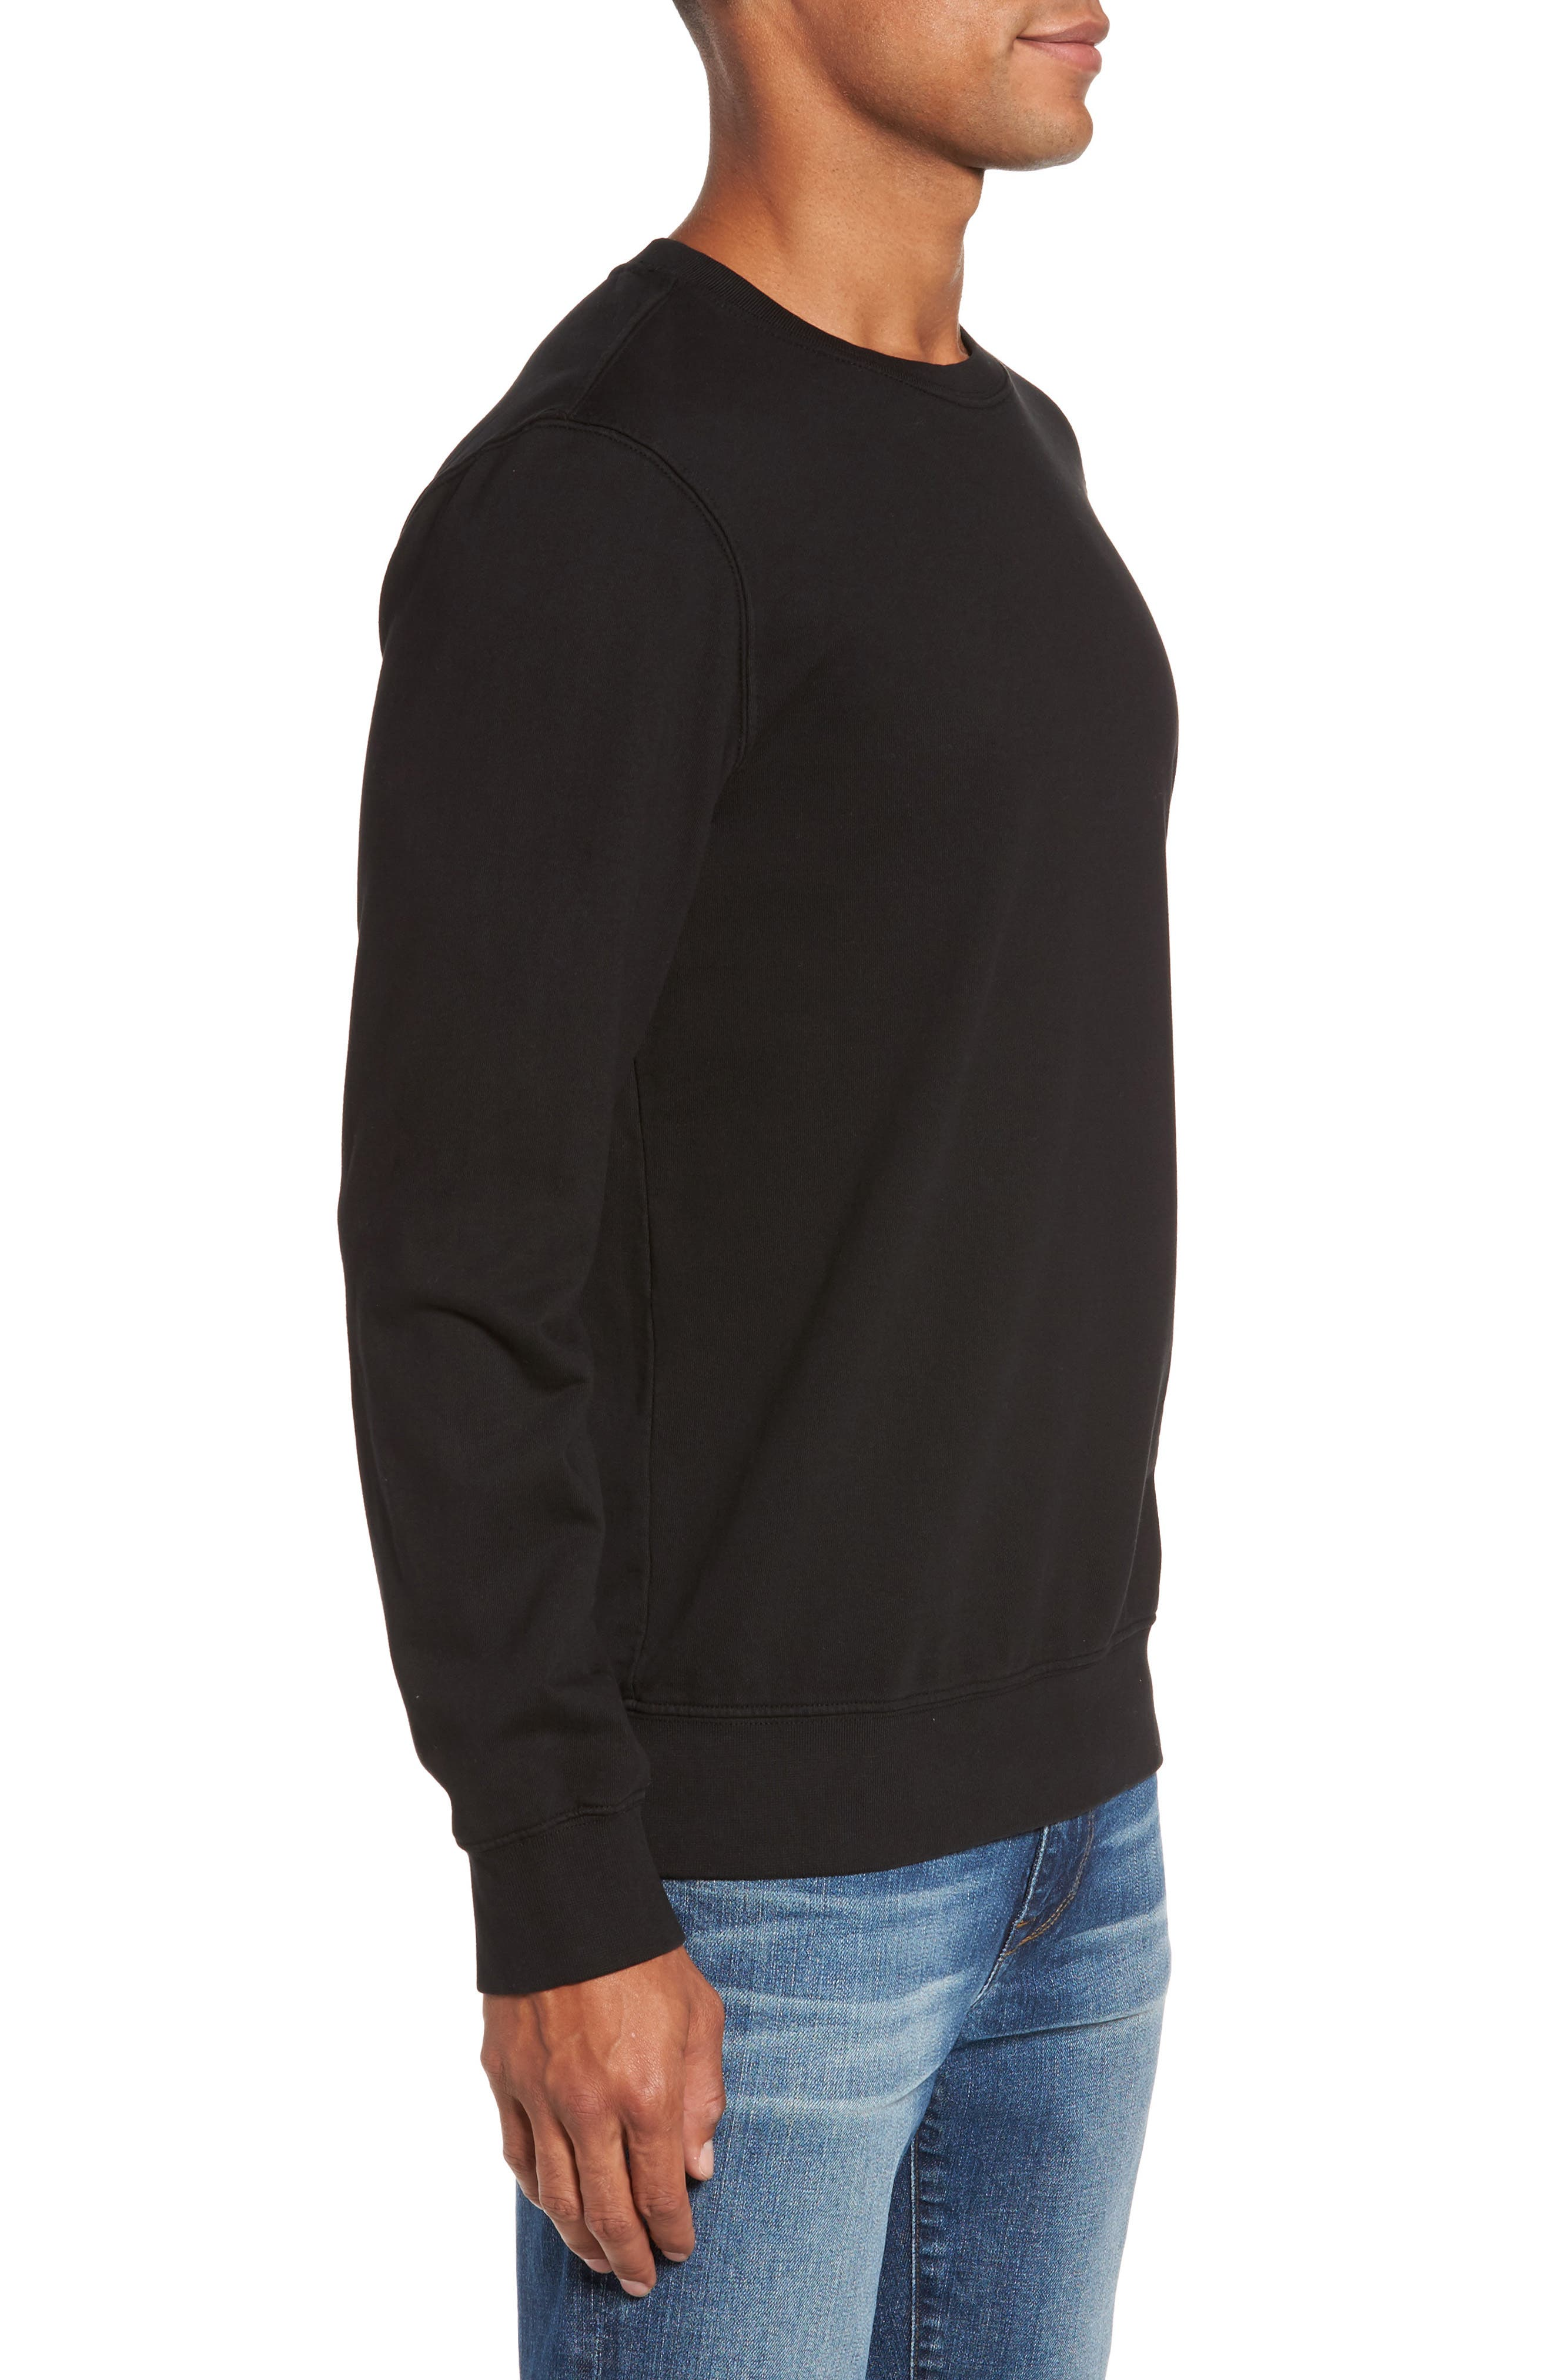 French Terry Sweatshirt,                             Alternate thumbnail 3, color,                             001